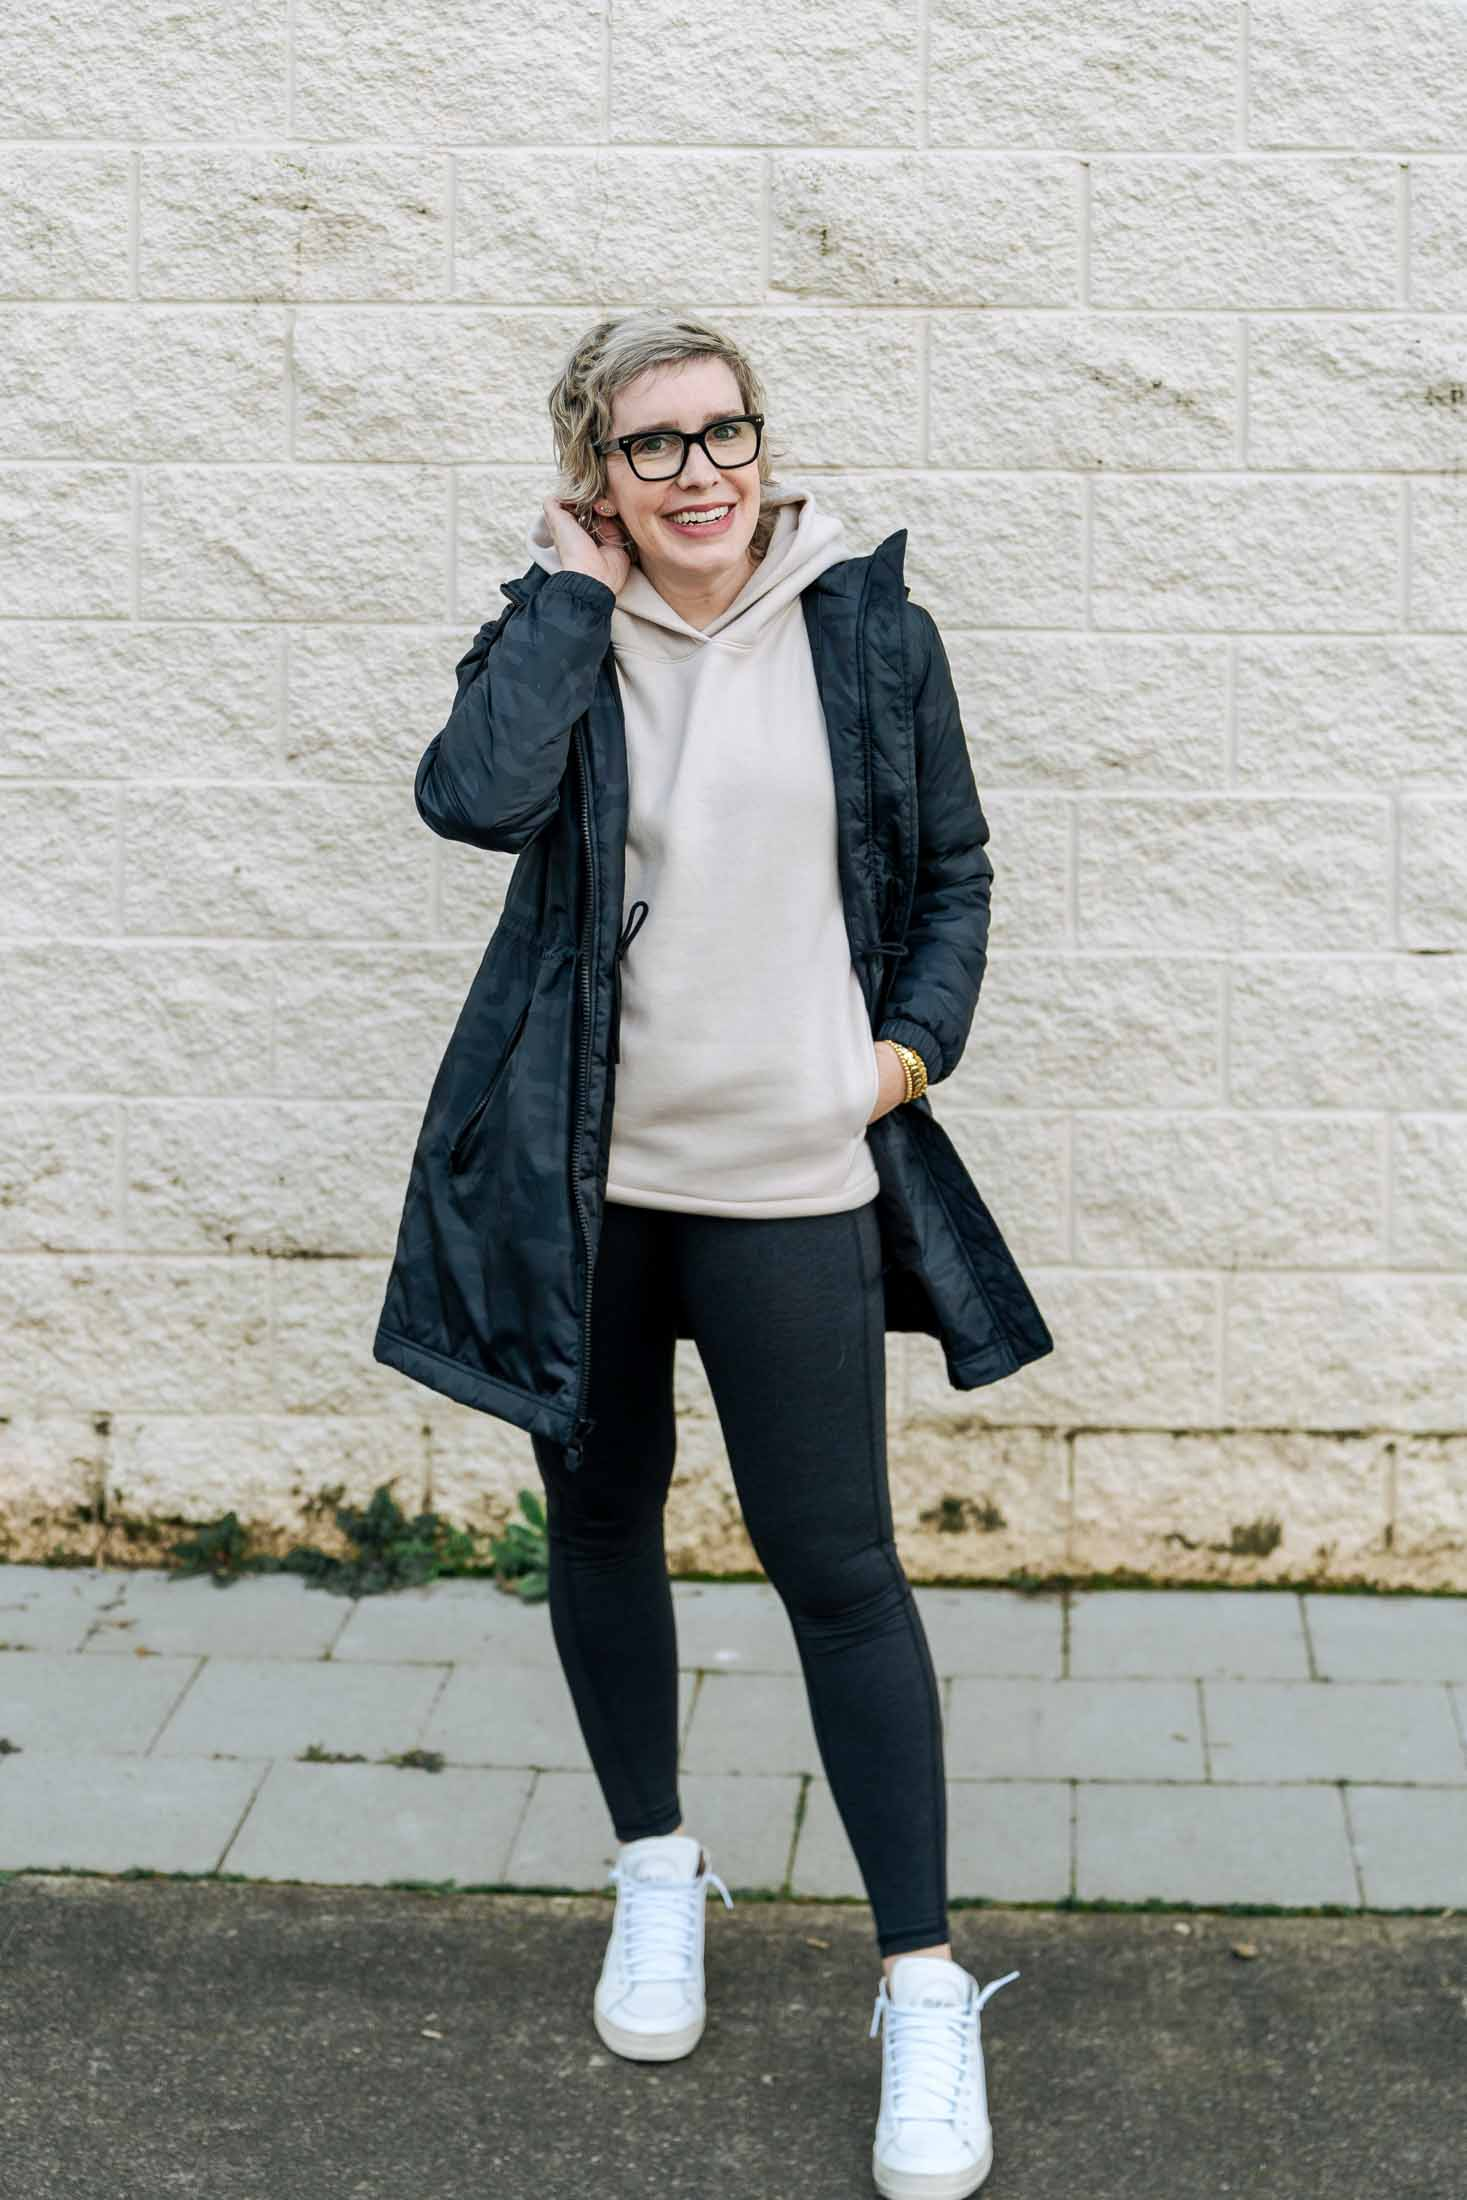 It's no surprise that I went right to the cute sporty pieces at Gap. Soft tech leggings, rad jackets, and this cozy hoodie I'll be wearing for months.